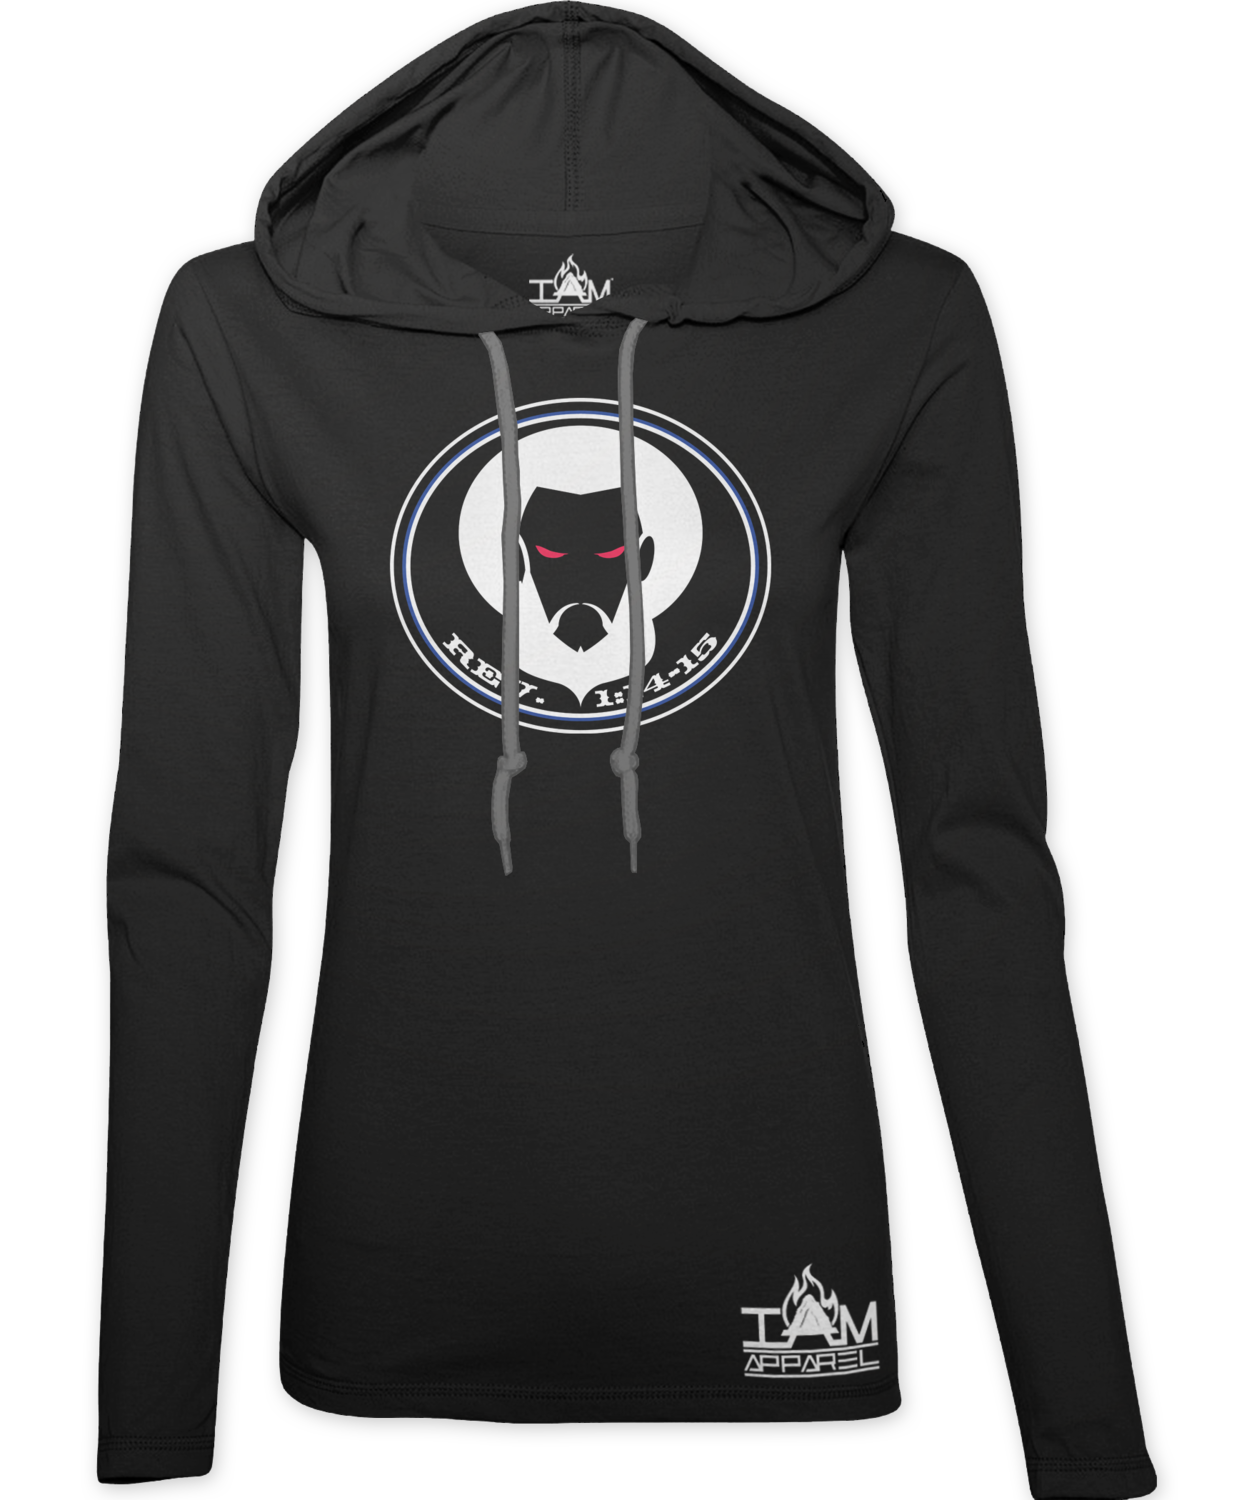 Women's Hoodie with Image of Christ